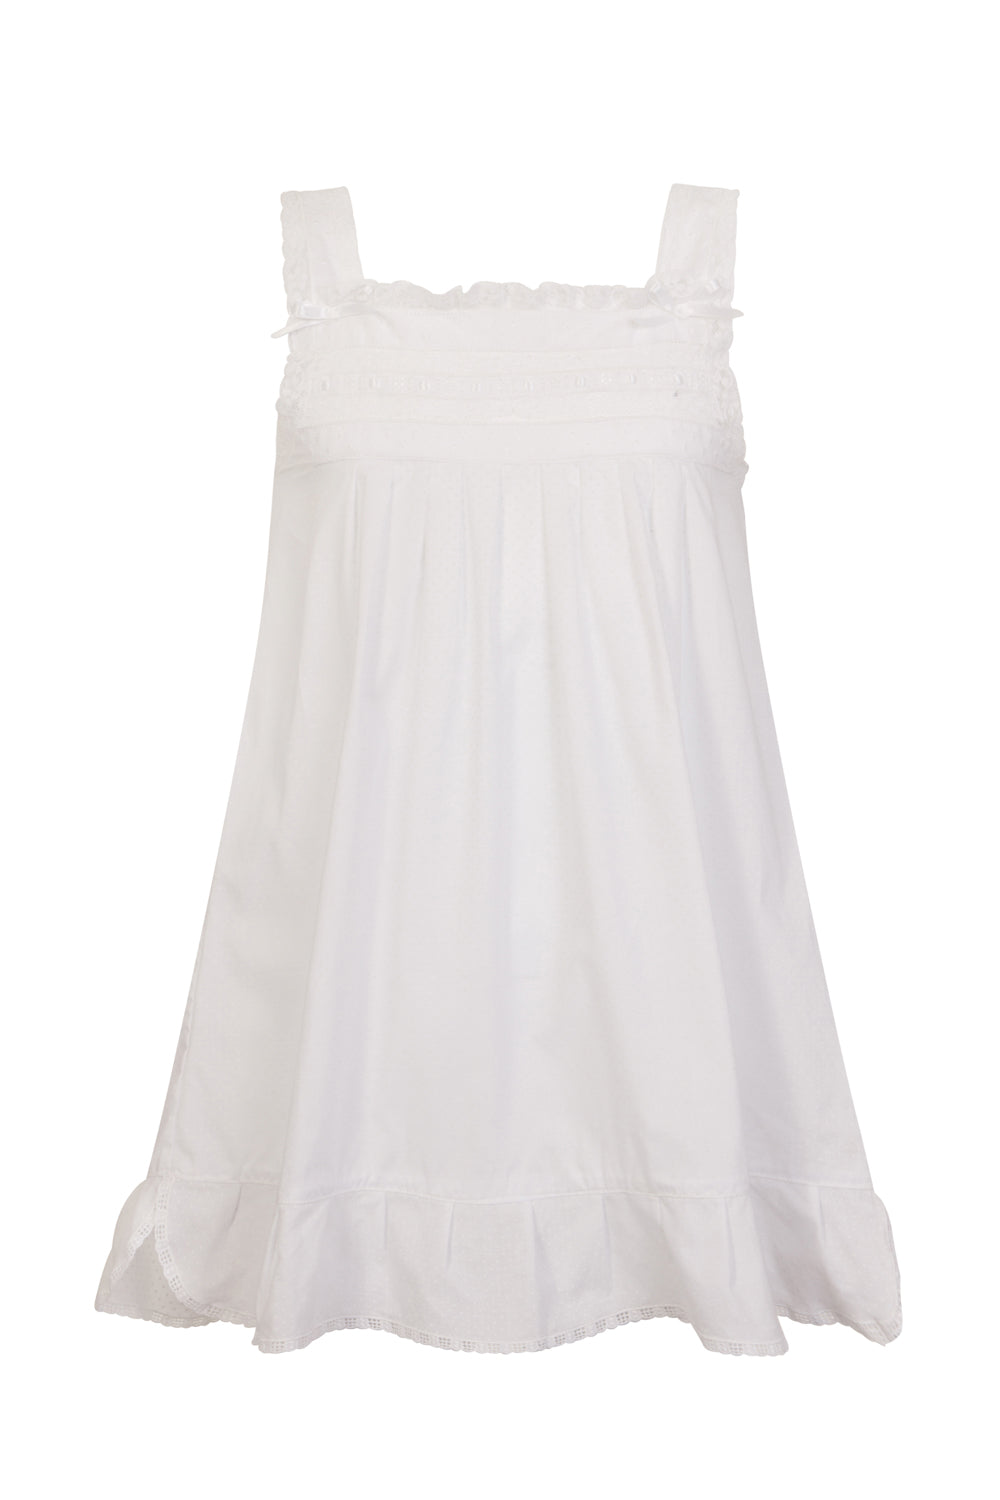 Carlota Organic Cotton Girls Night Dress